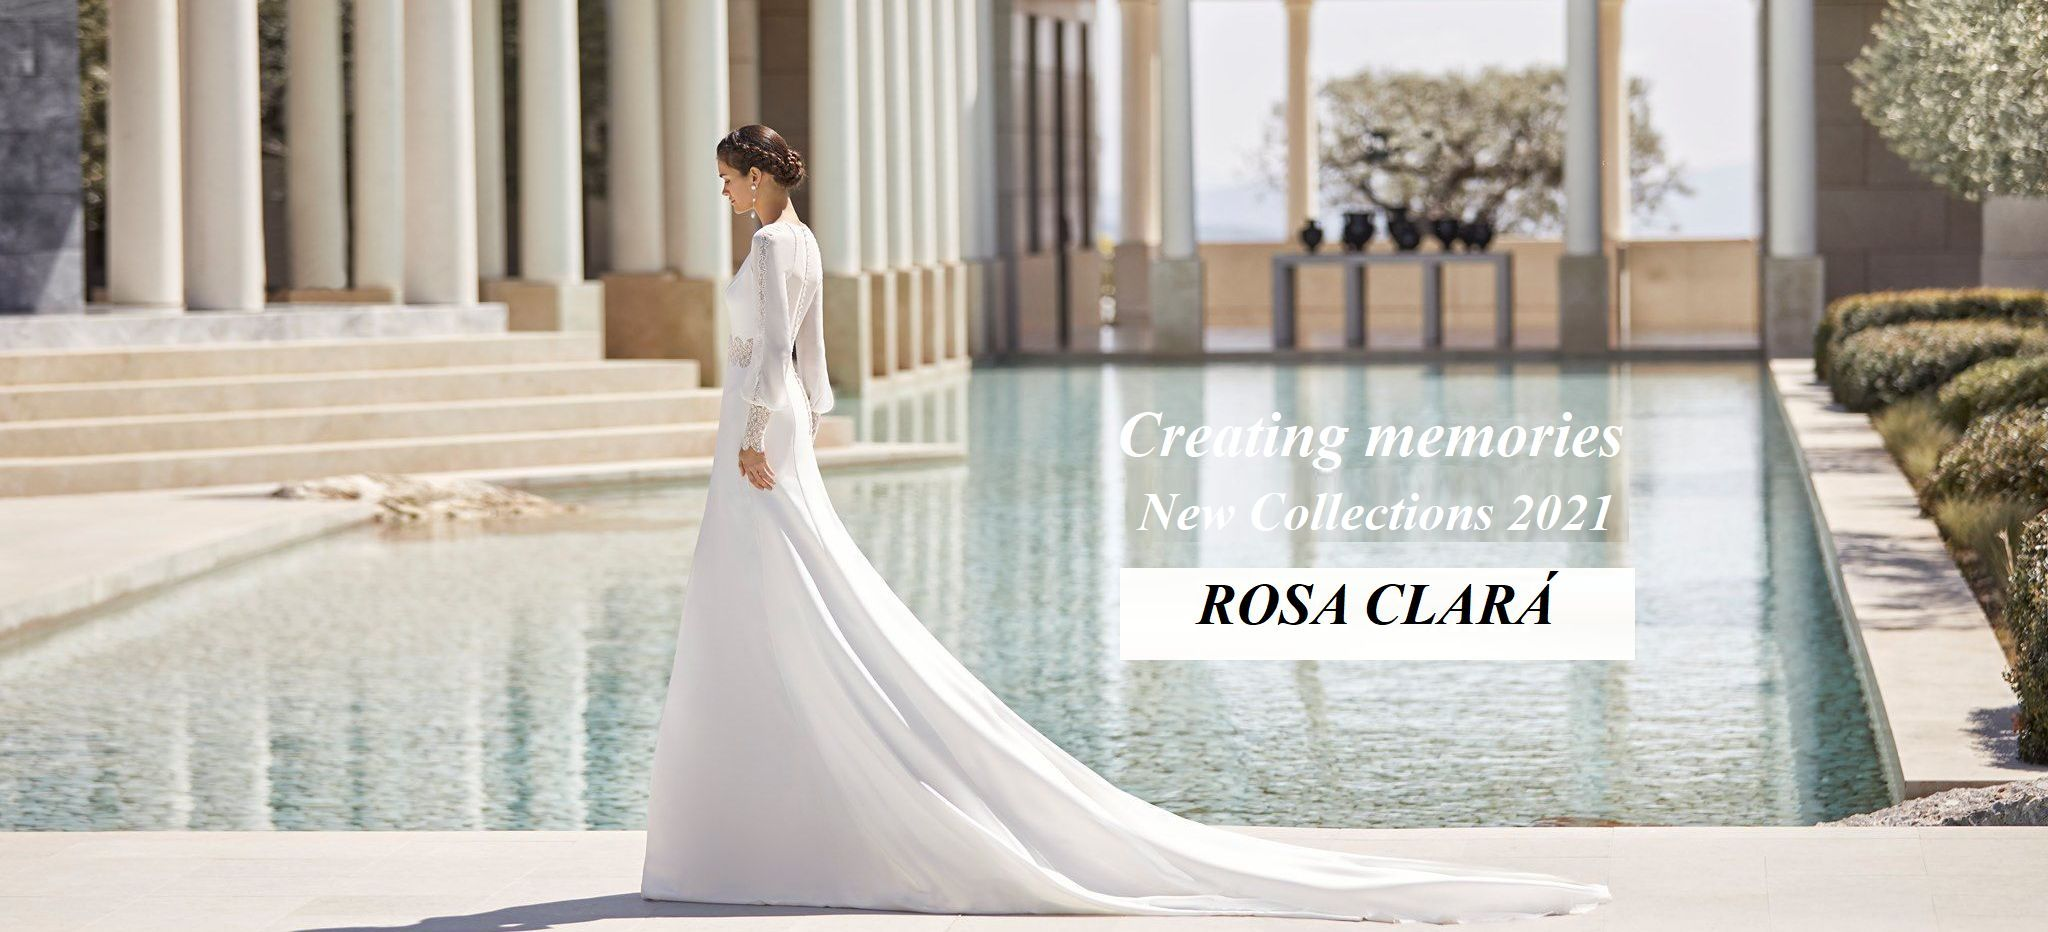 2009-RosaClara-Slider-base-enhanced